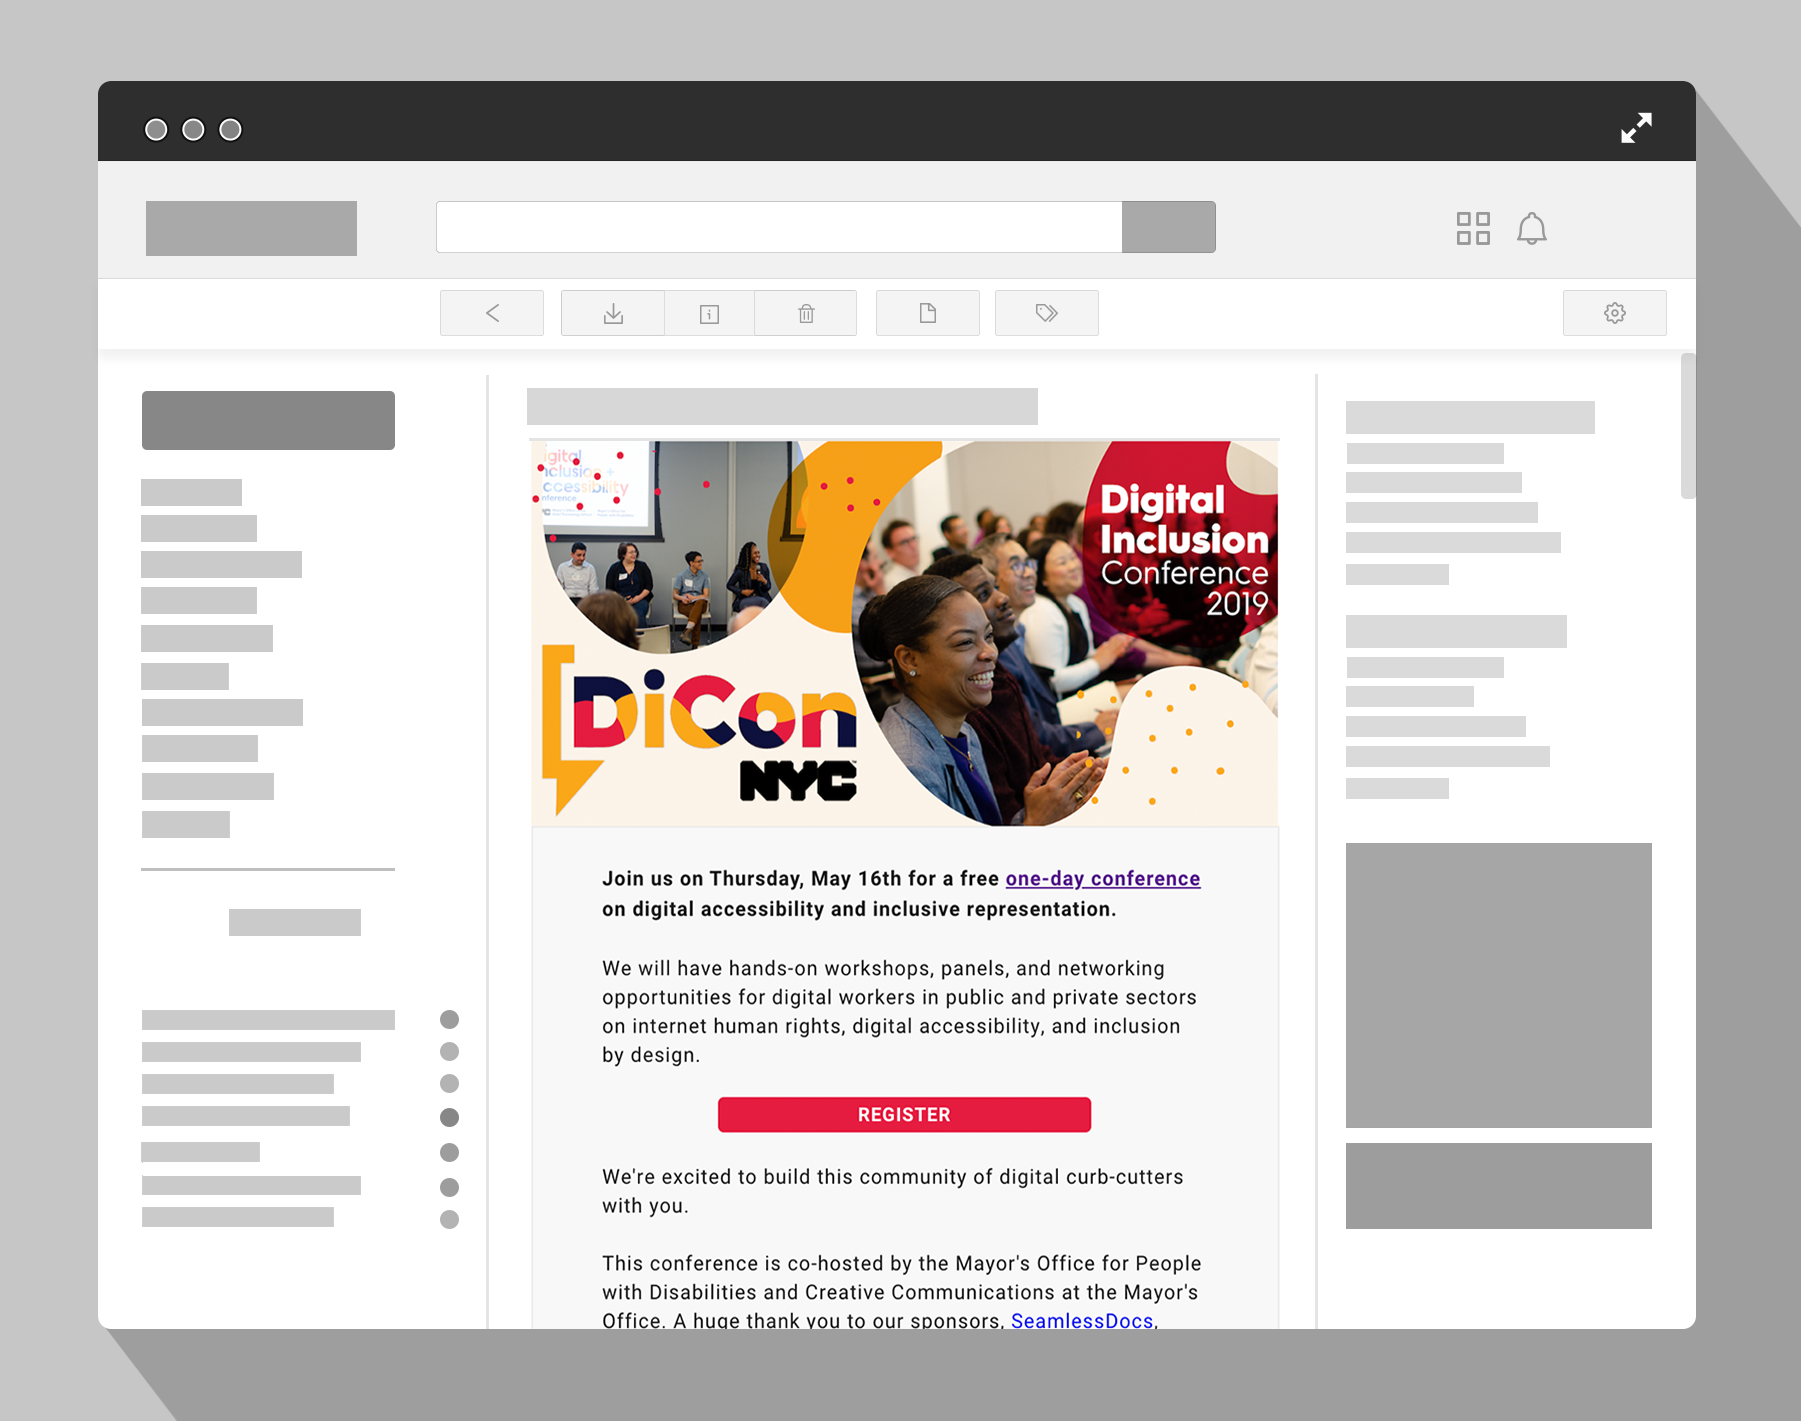 DiCon NYC Digital Inclusion Conference email invite mockup.